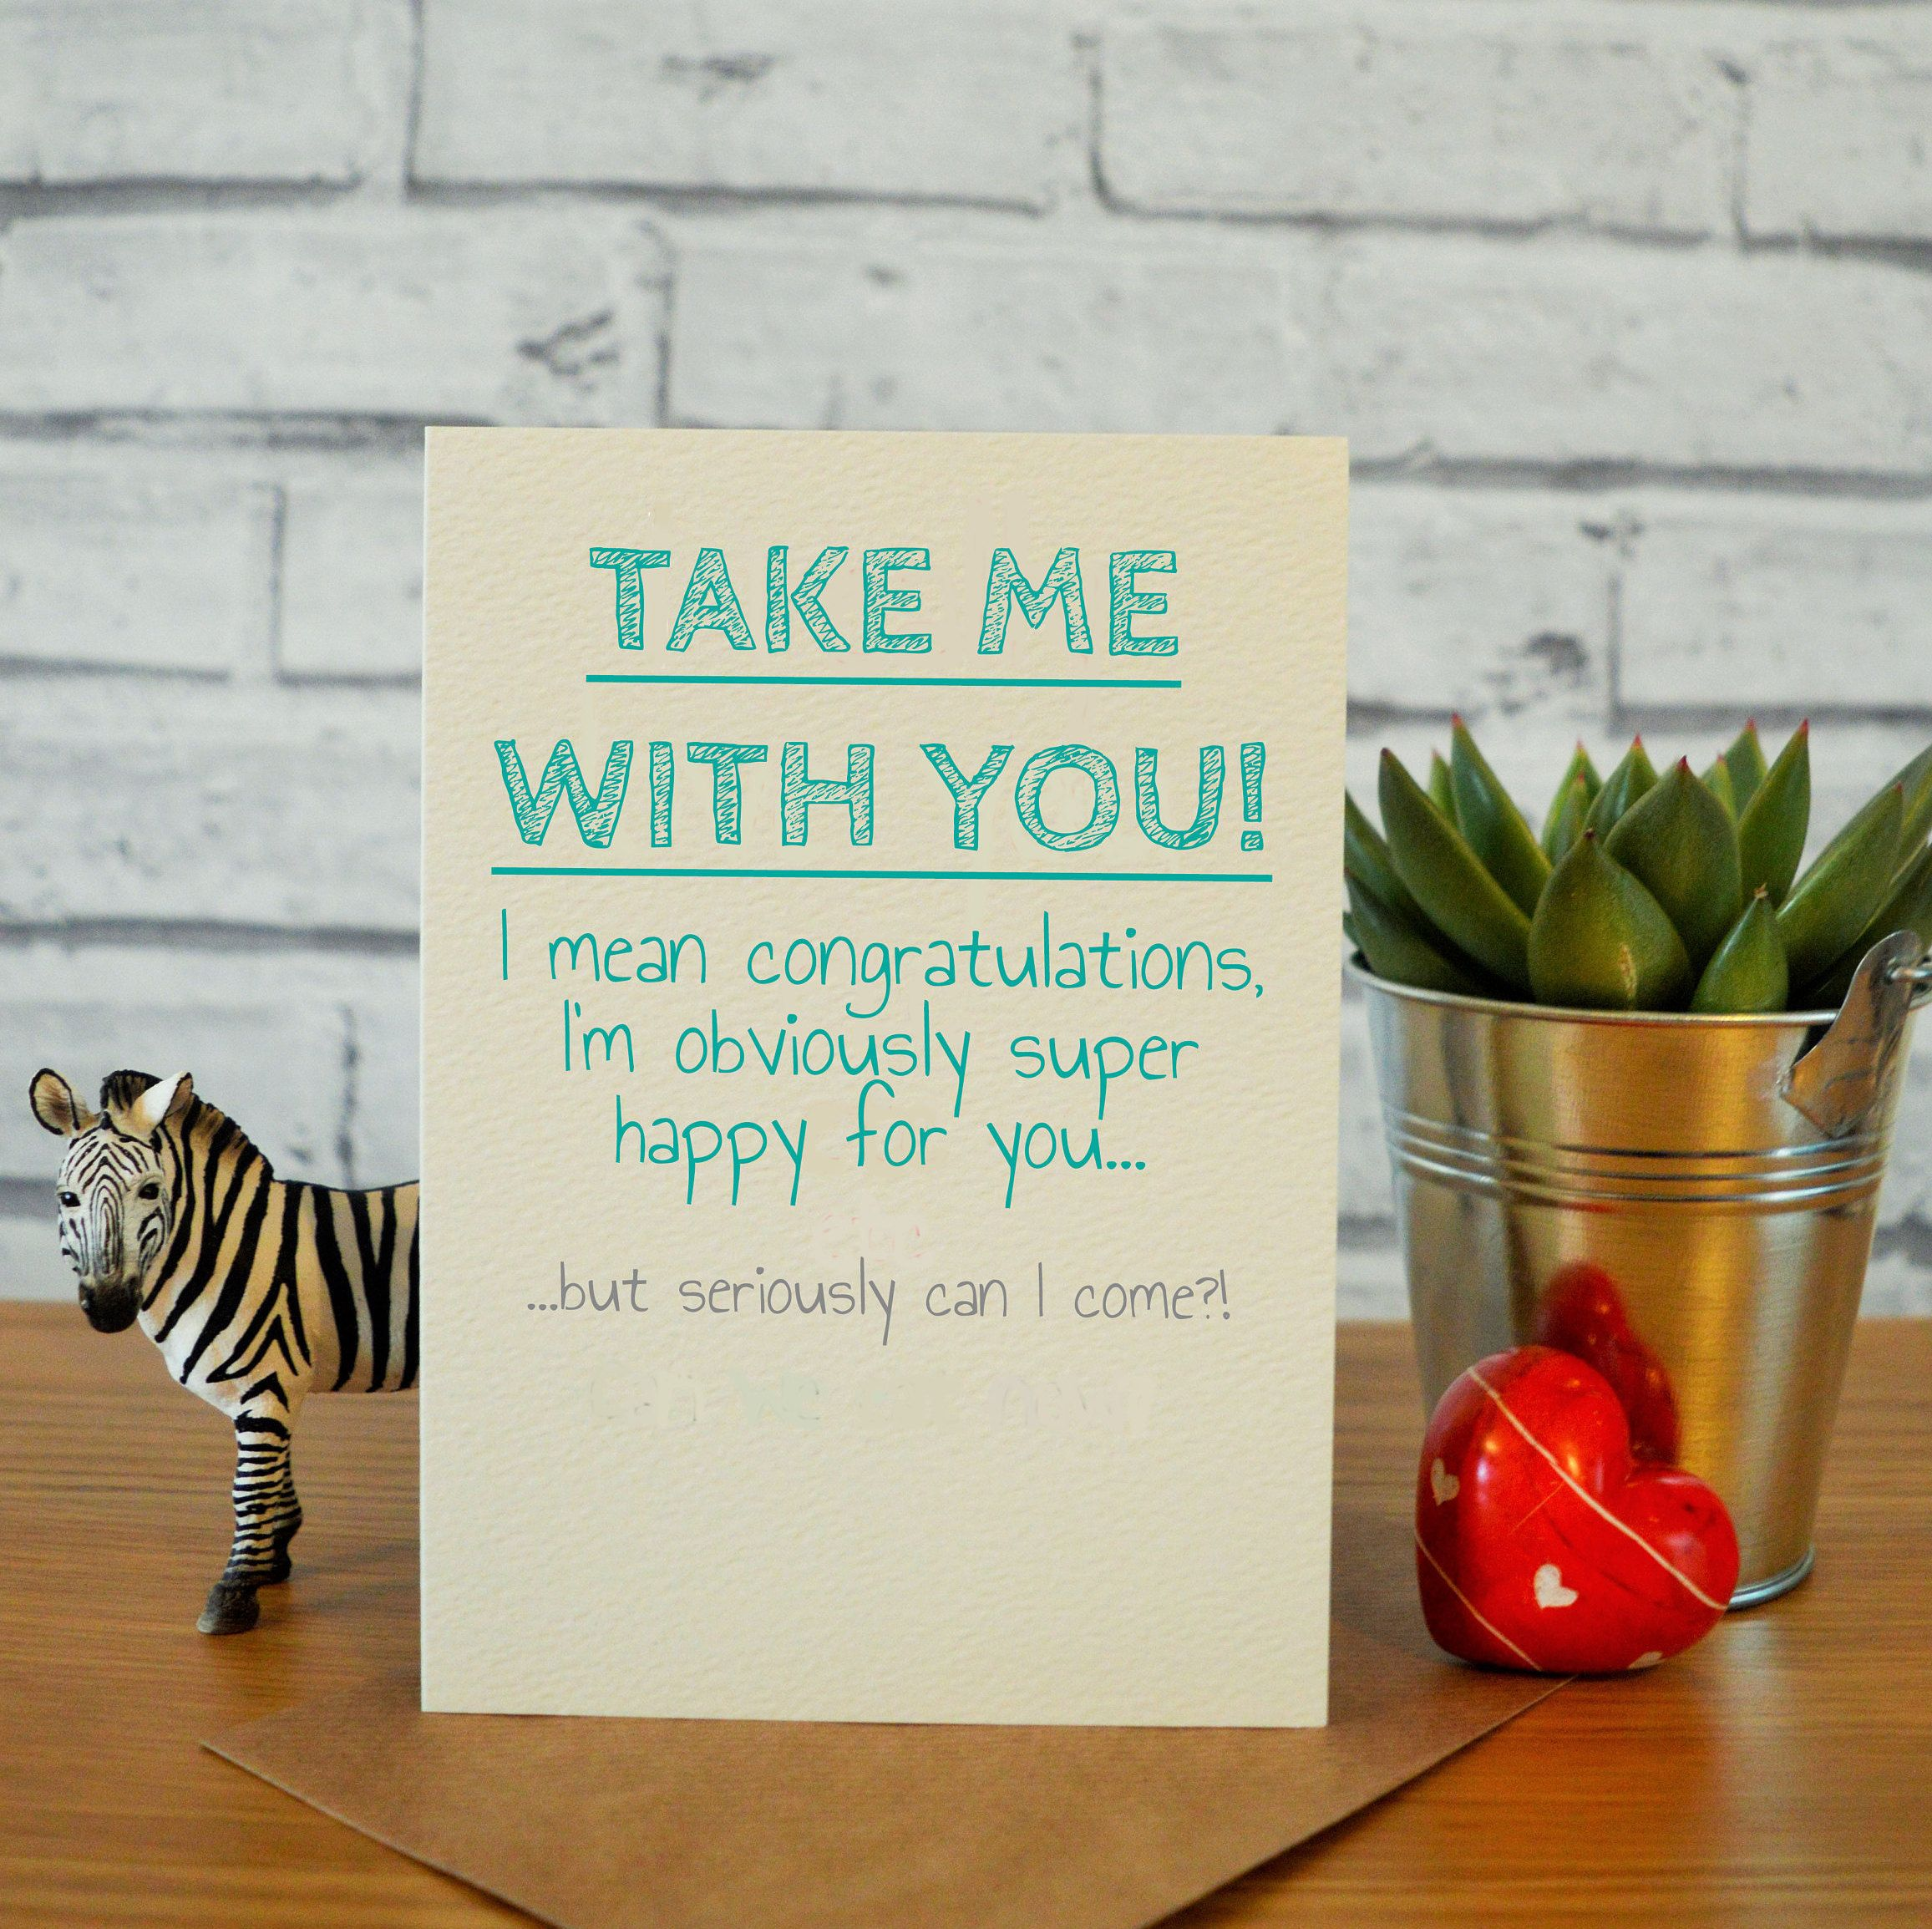 Funny Leaving Card Funny New Job Card Sorry You Re Etsy New Job Card Funny Leaving Cards Leaving Cards